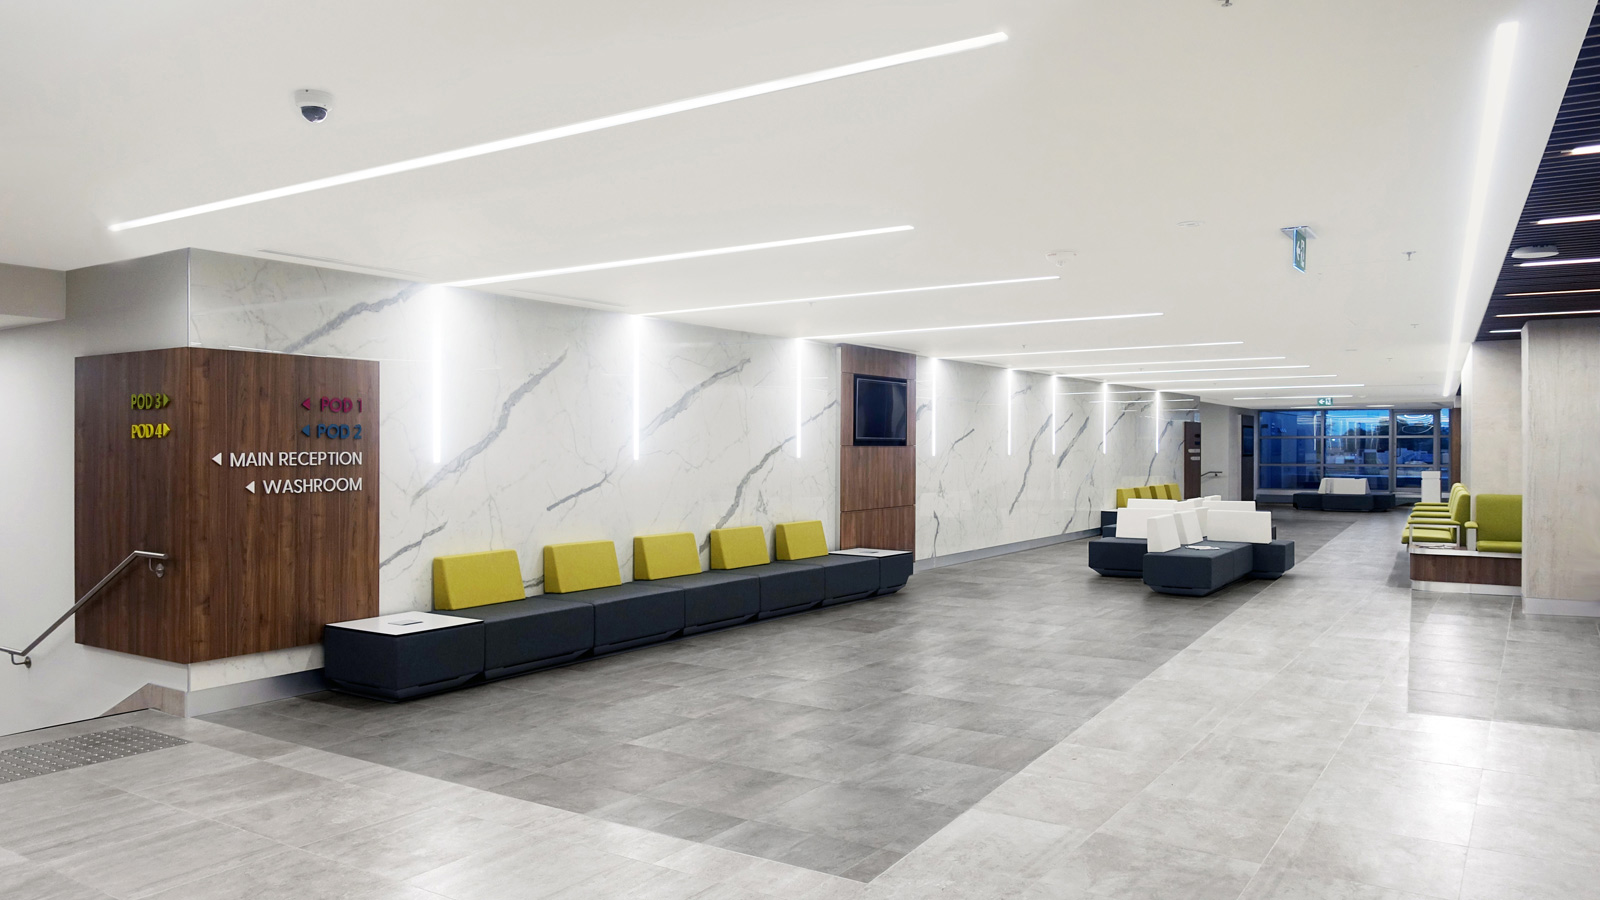 PORCELANOSA Grupo Projects: This clinic in Canada turns the design from PORCELANOSA Grupo into a cure and an antidote